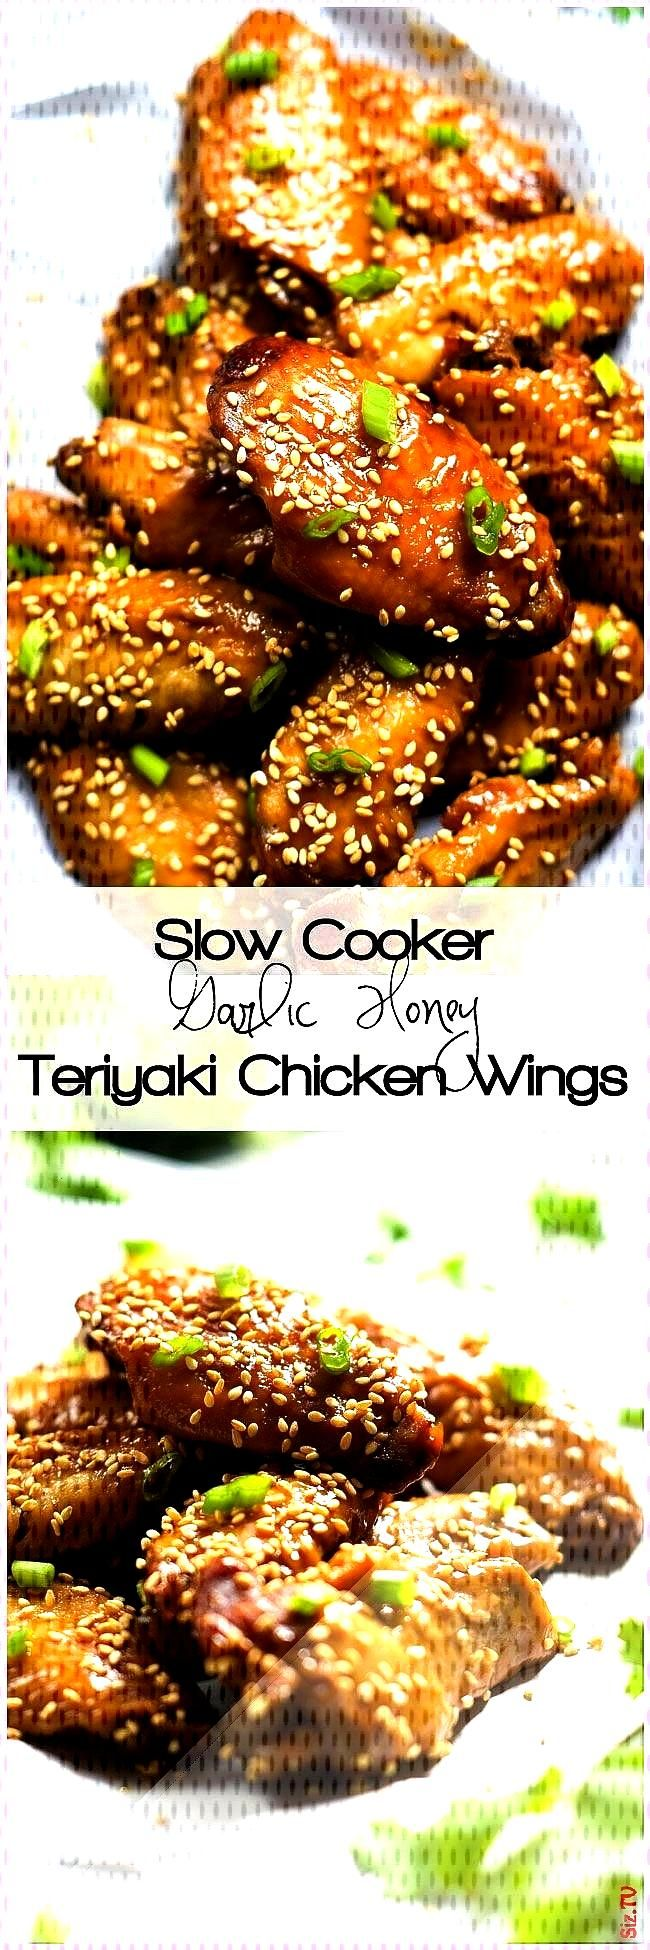 the fryer with these Slow Cooker Garlic Honey Teriyaki Chicken Wings Filled with Asian flavors of g